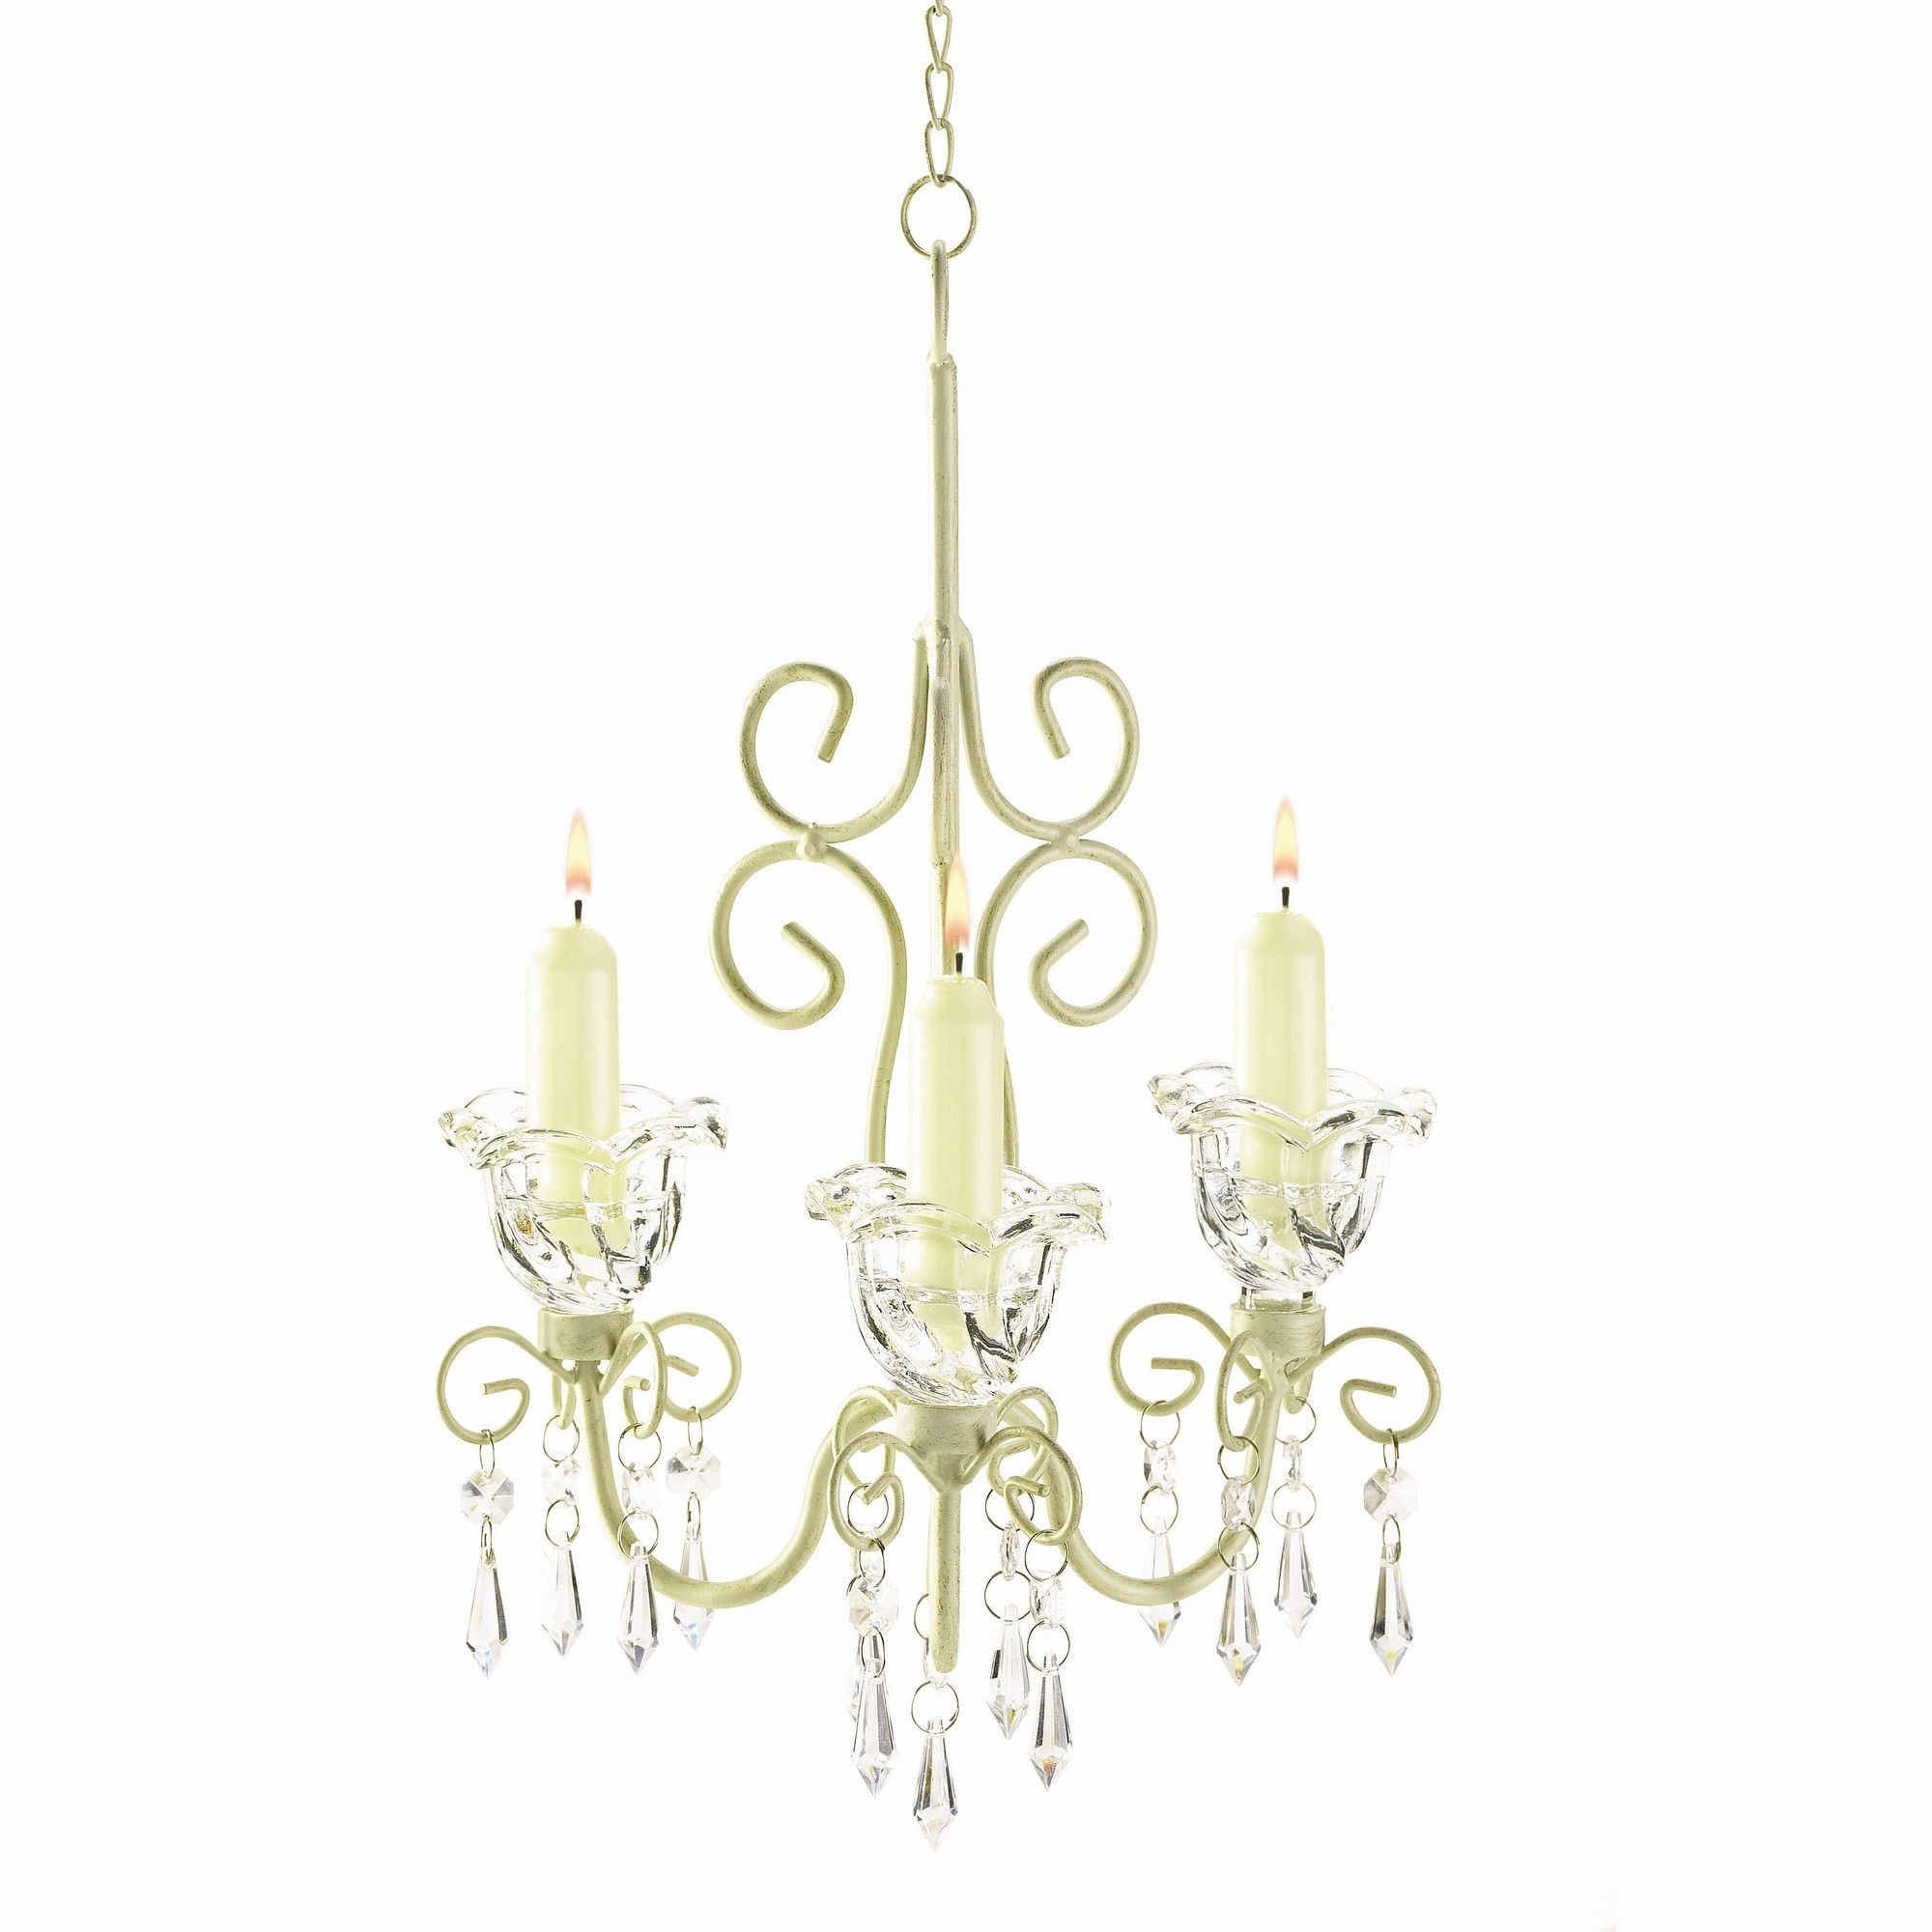 Zingz & Thingz Iron and Acrylic Rococo Crystal Chandelier $18